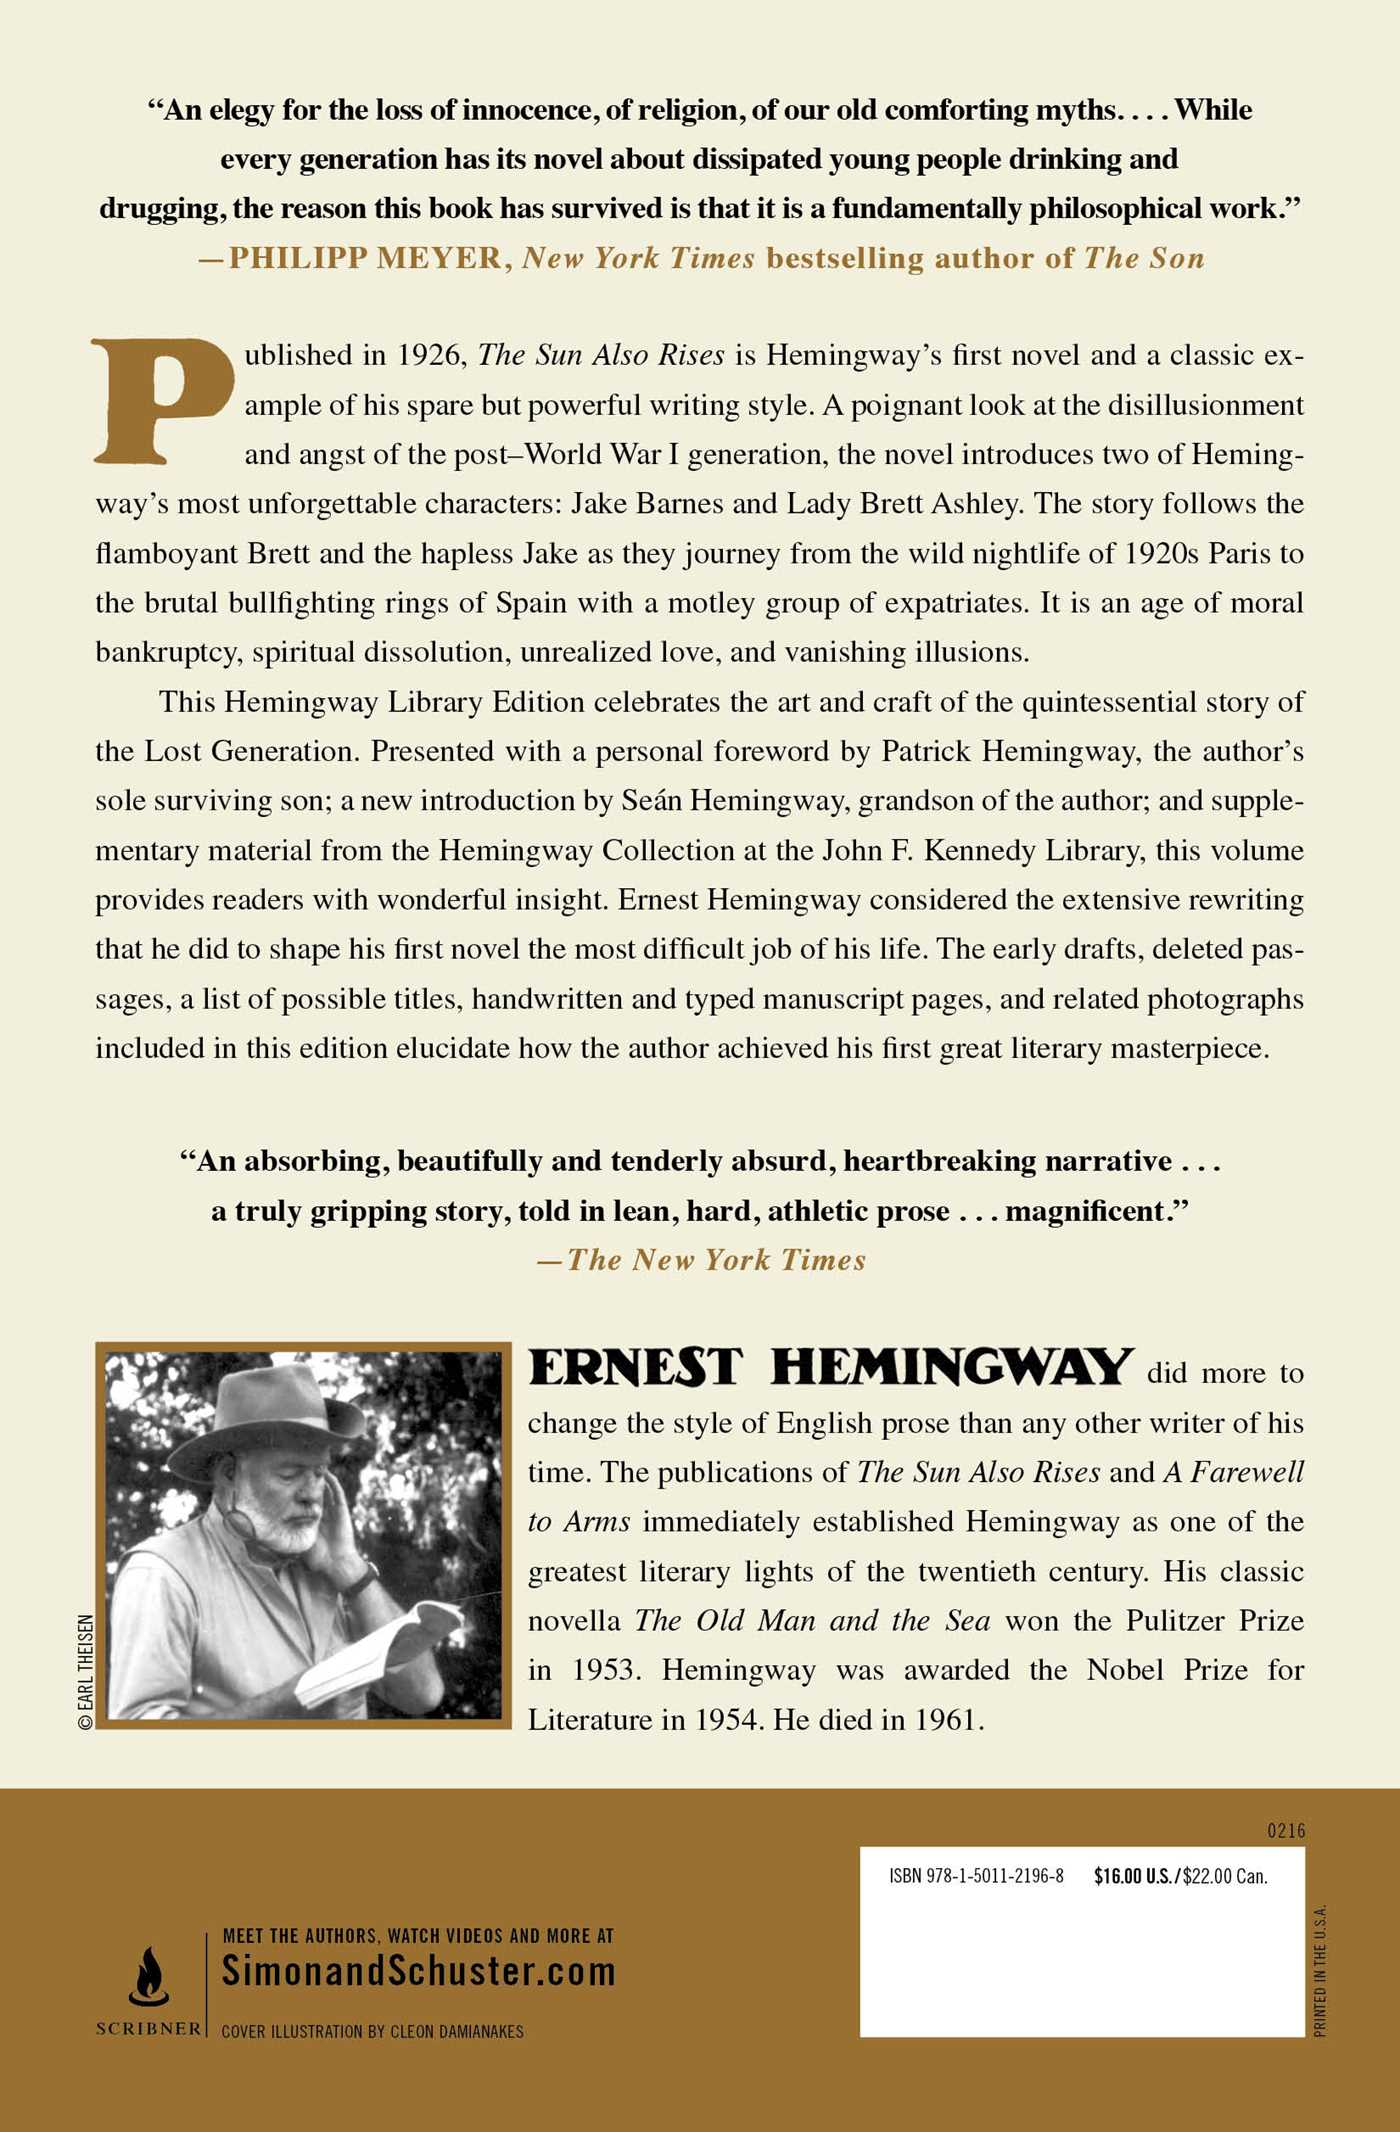 analysis of the sun also rises An analysis of ernest hemingway's novel the sun also rises.